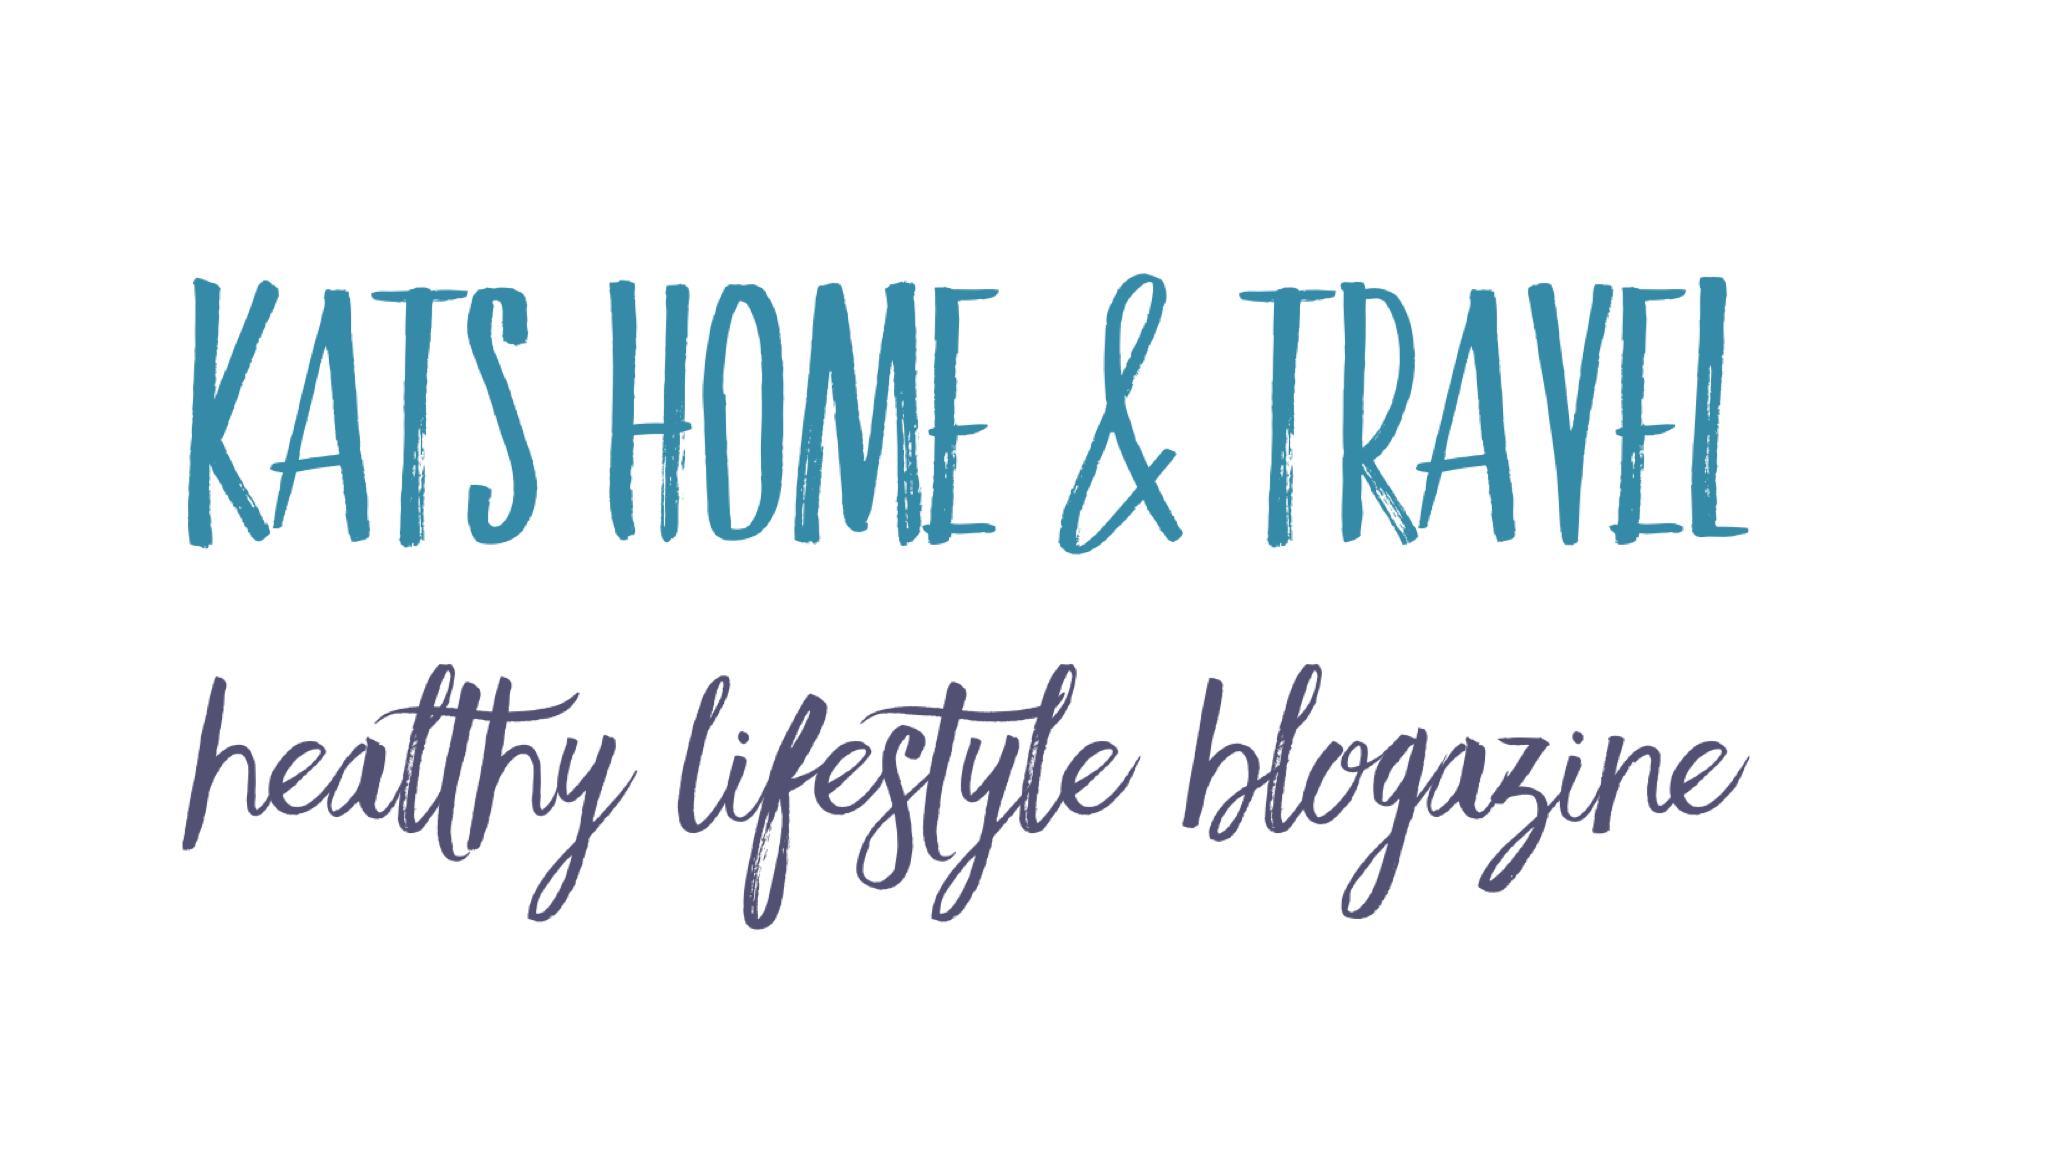 Kats Home and Travel – Healthy Lifestyle Blogazine